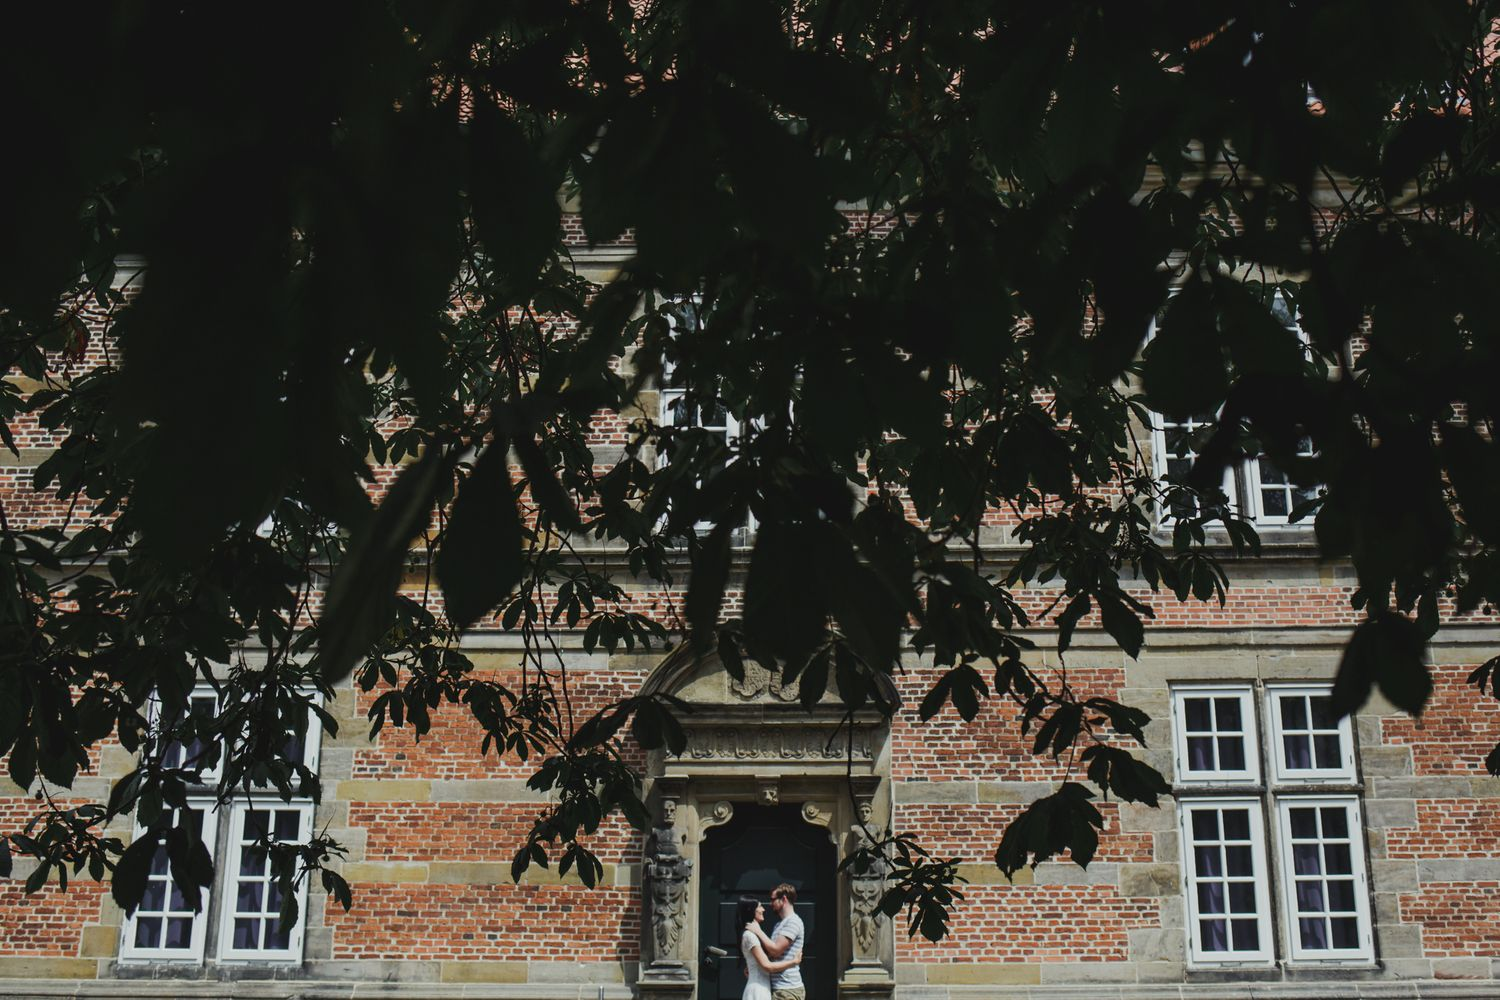 Hochzeitsfotograf Hannover / Destination Wedding Photographer